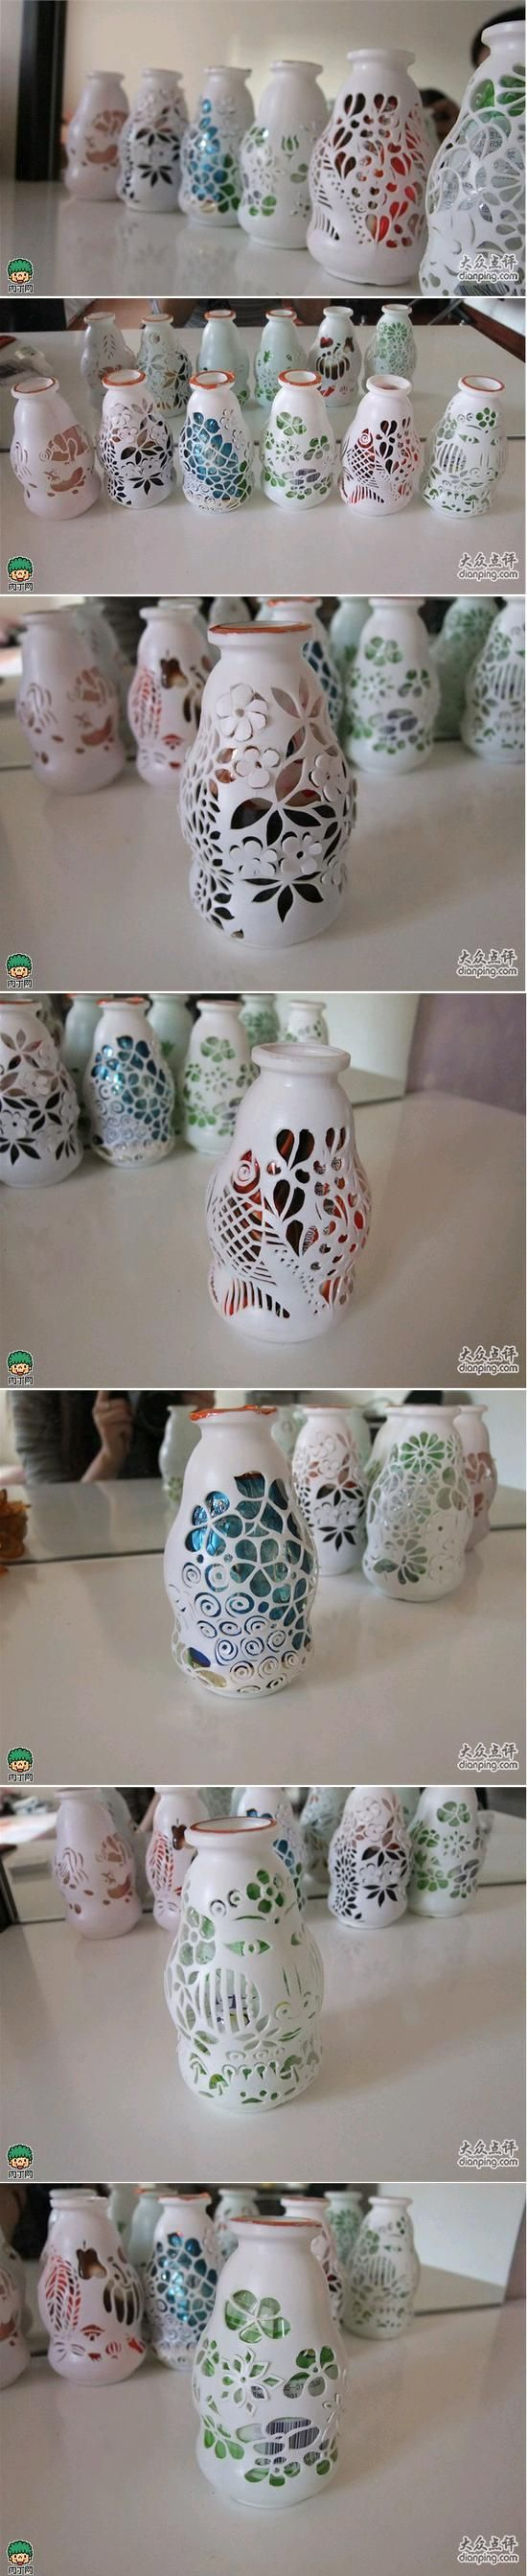 DIY Milk Bottle Artistic Vase DIY Projects | UsefulDIY.com Follow us on Facebook ==> https://www.facebook.com/UsefulDiy